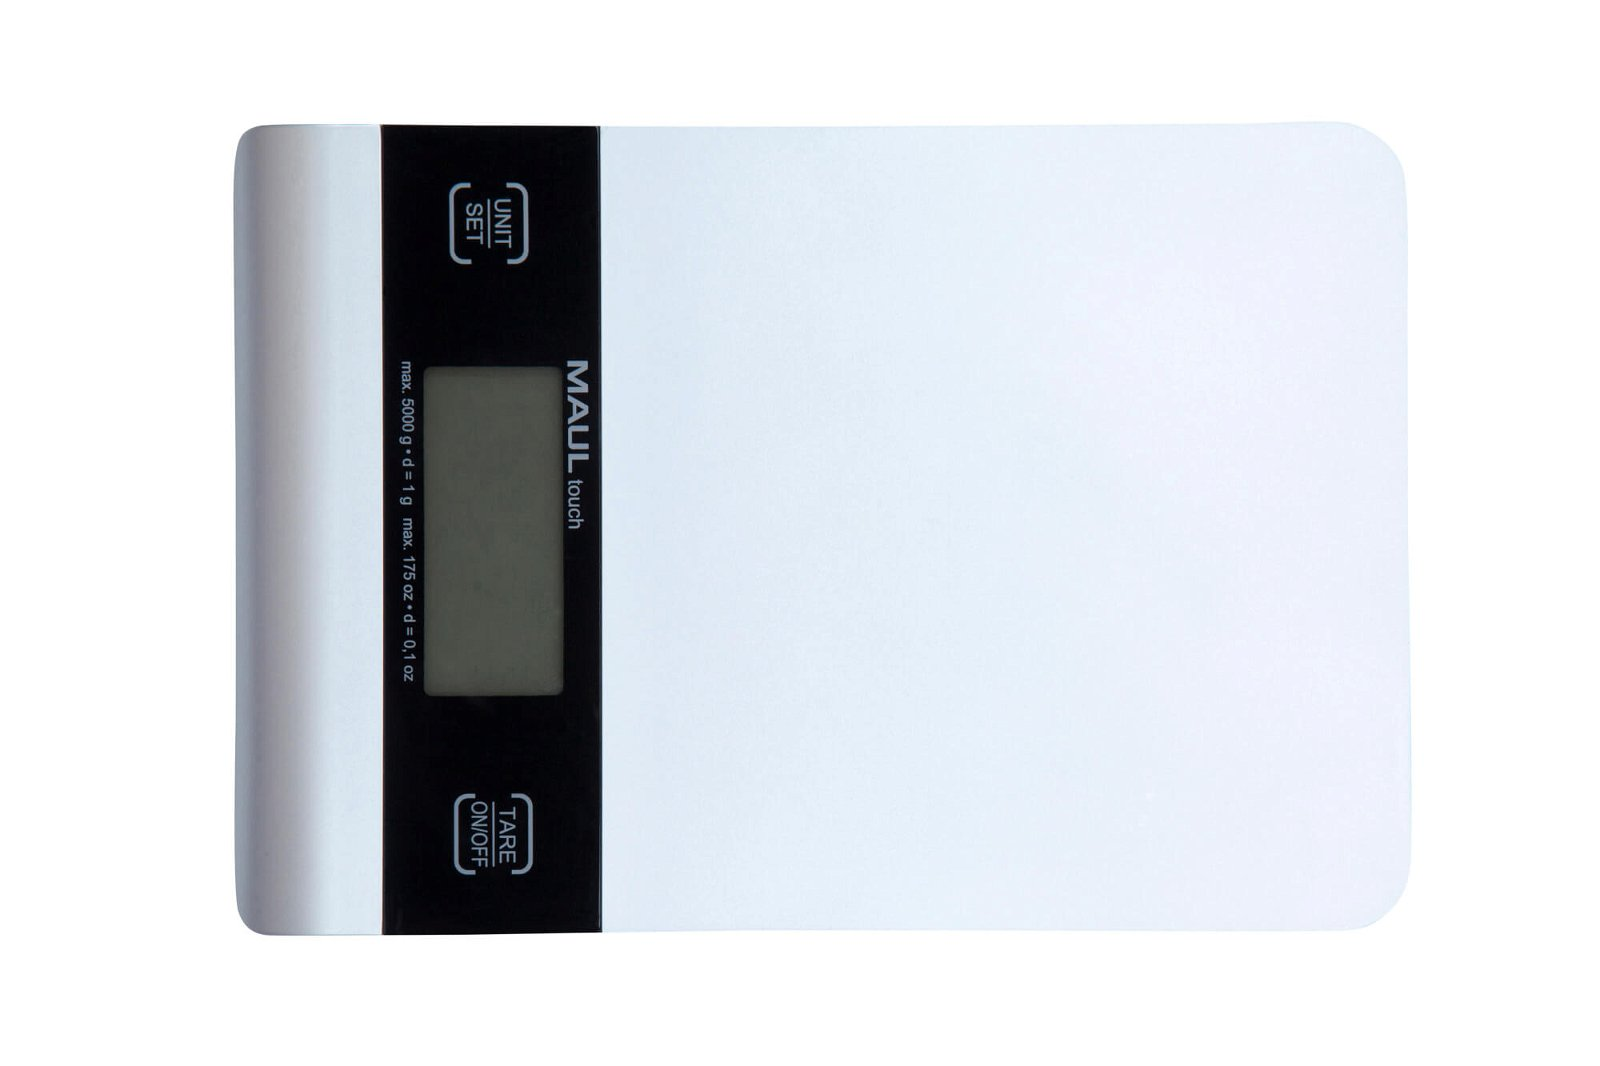 Briefwaage MAULtouch mit Batterie, 5000 g, silber